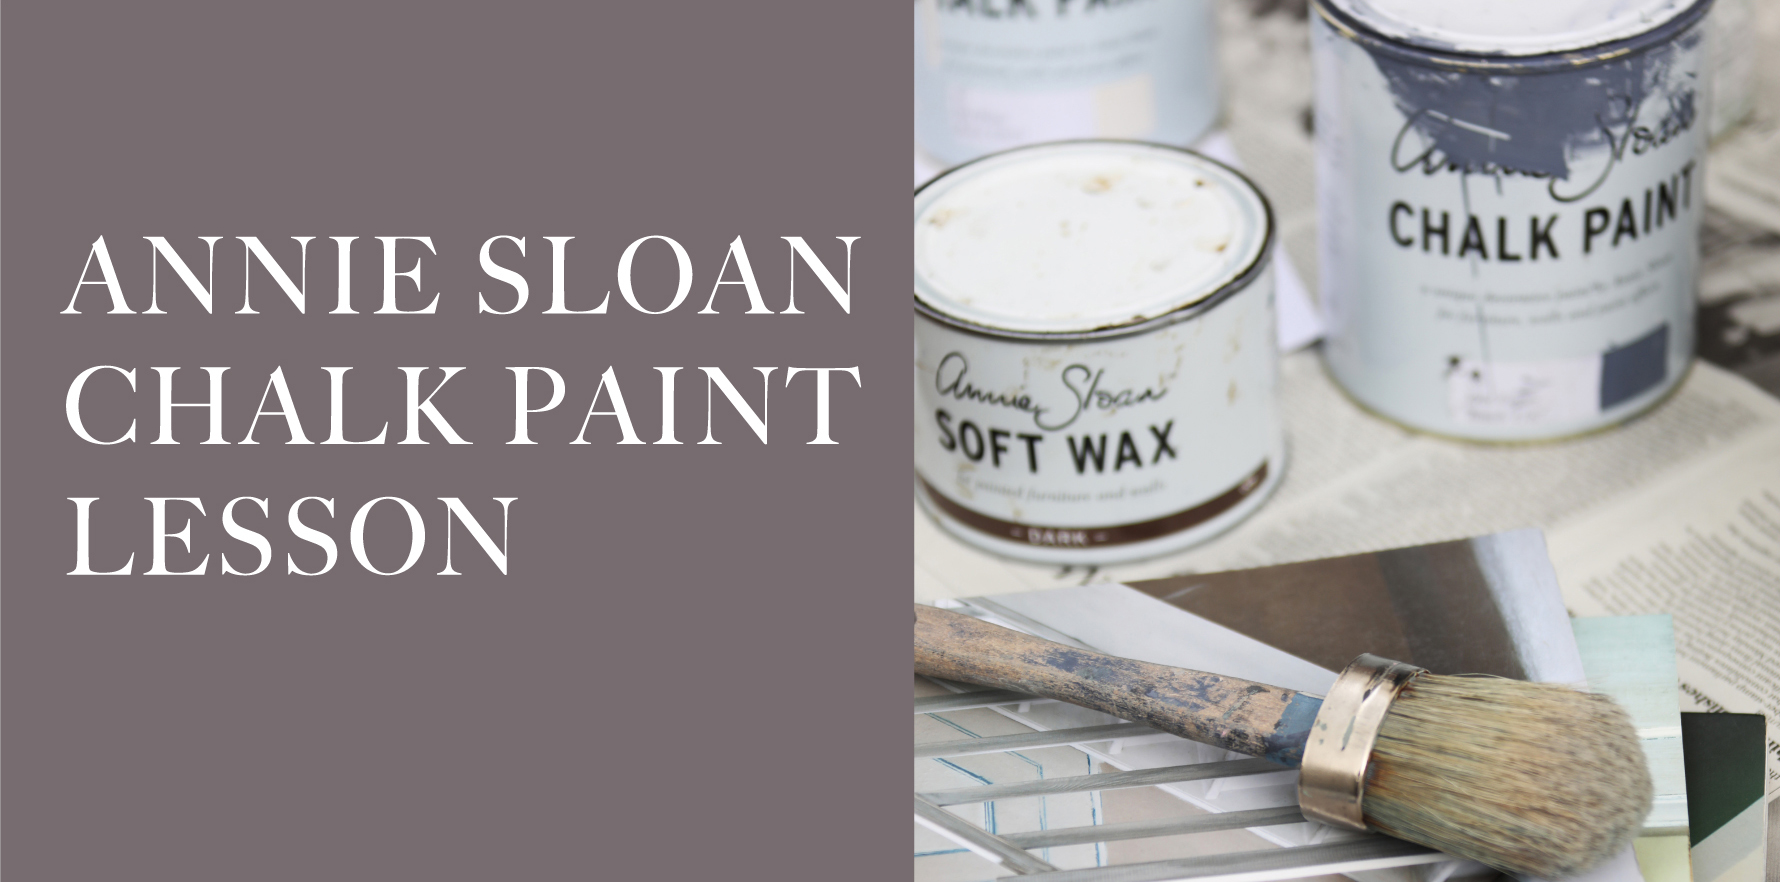 ANNIE SLOAN CHALK PAINT LESSON アニースローンチョークペイントレッスン